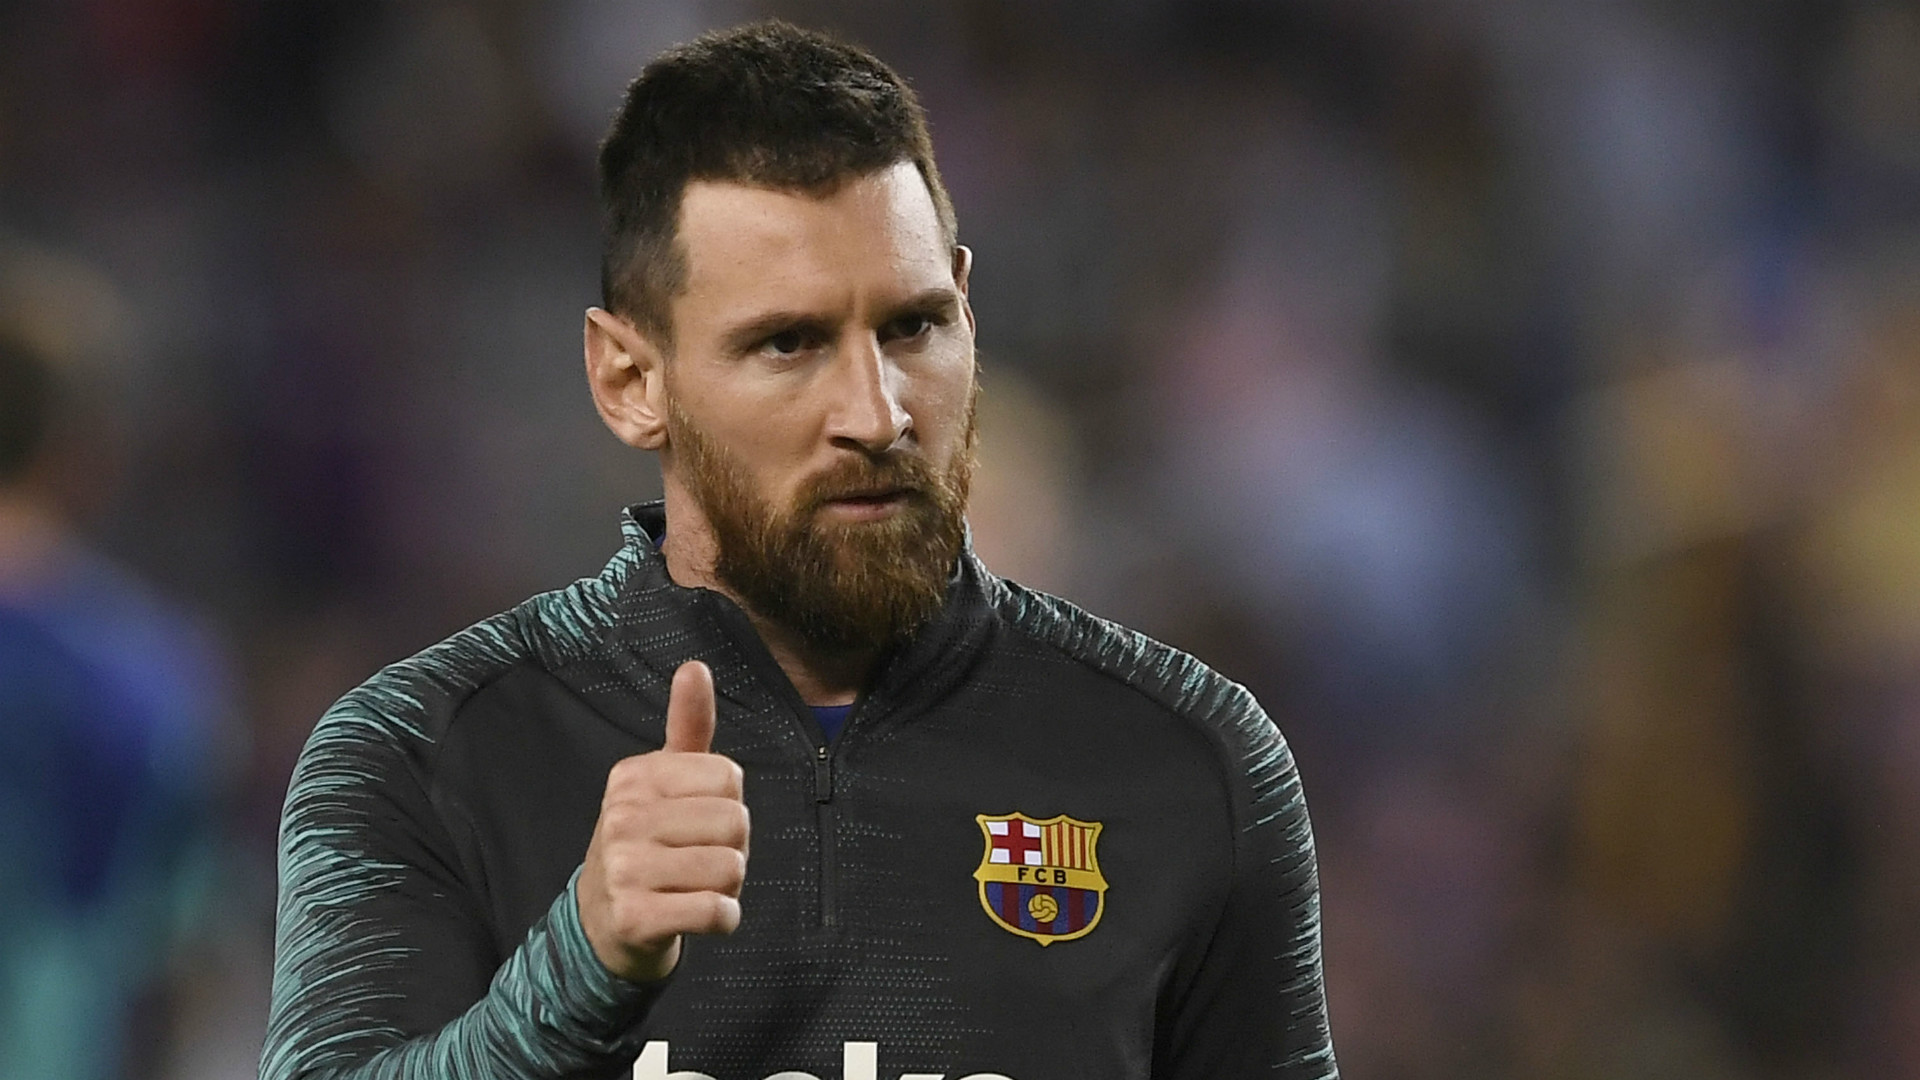 Messi: I've never had the need to leave Barcelona, the best club in the world